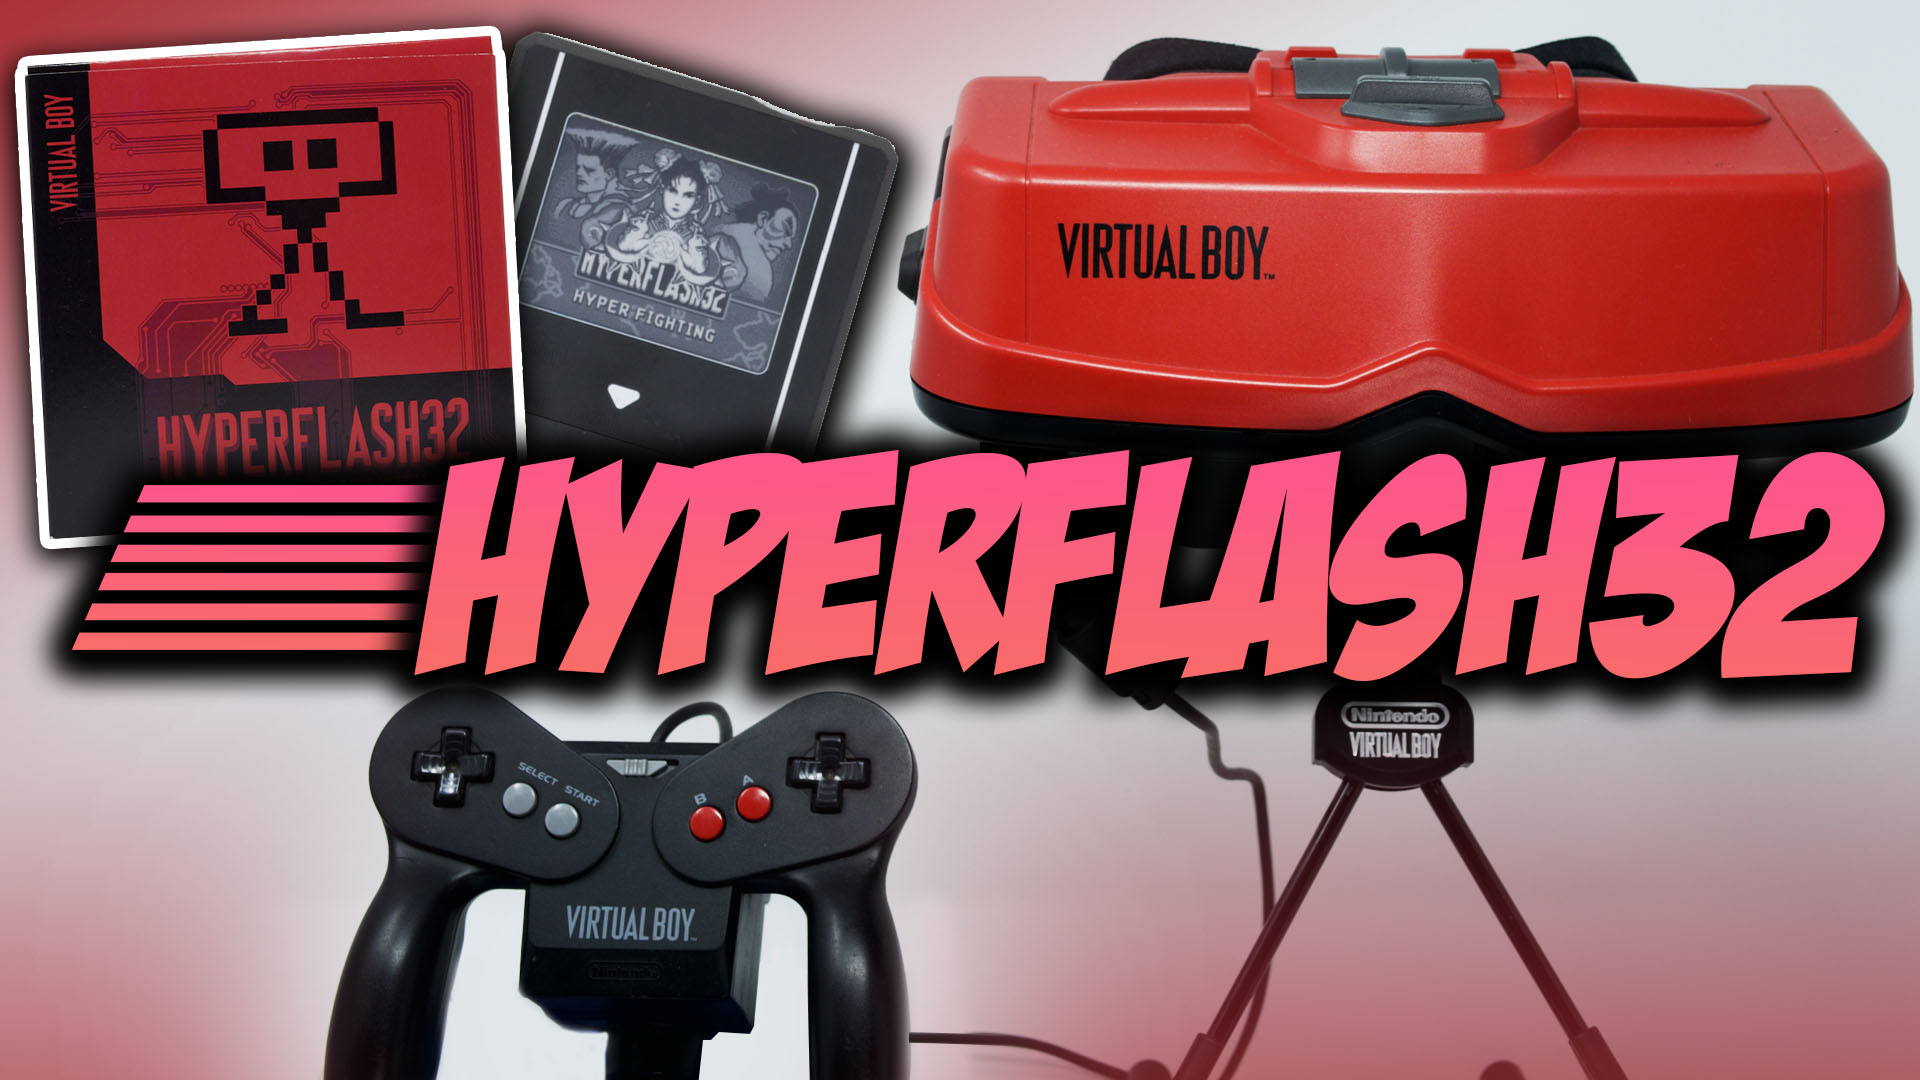 HyperFlash32 – Virtual Boy eInk ROM Cart Reviewed